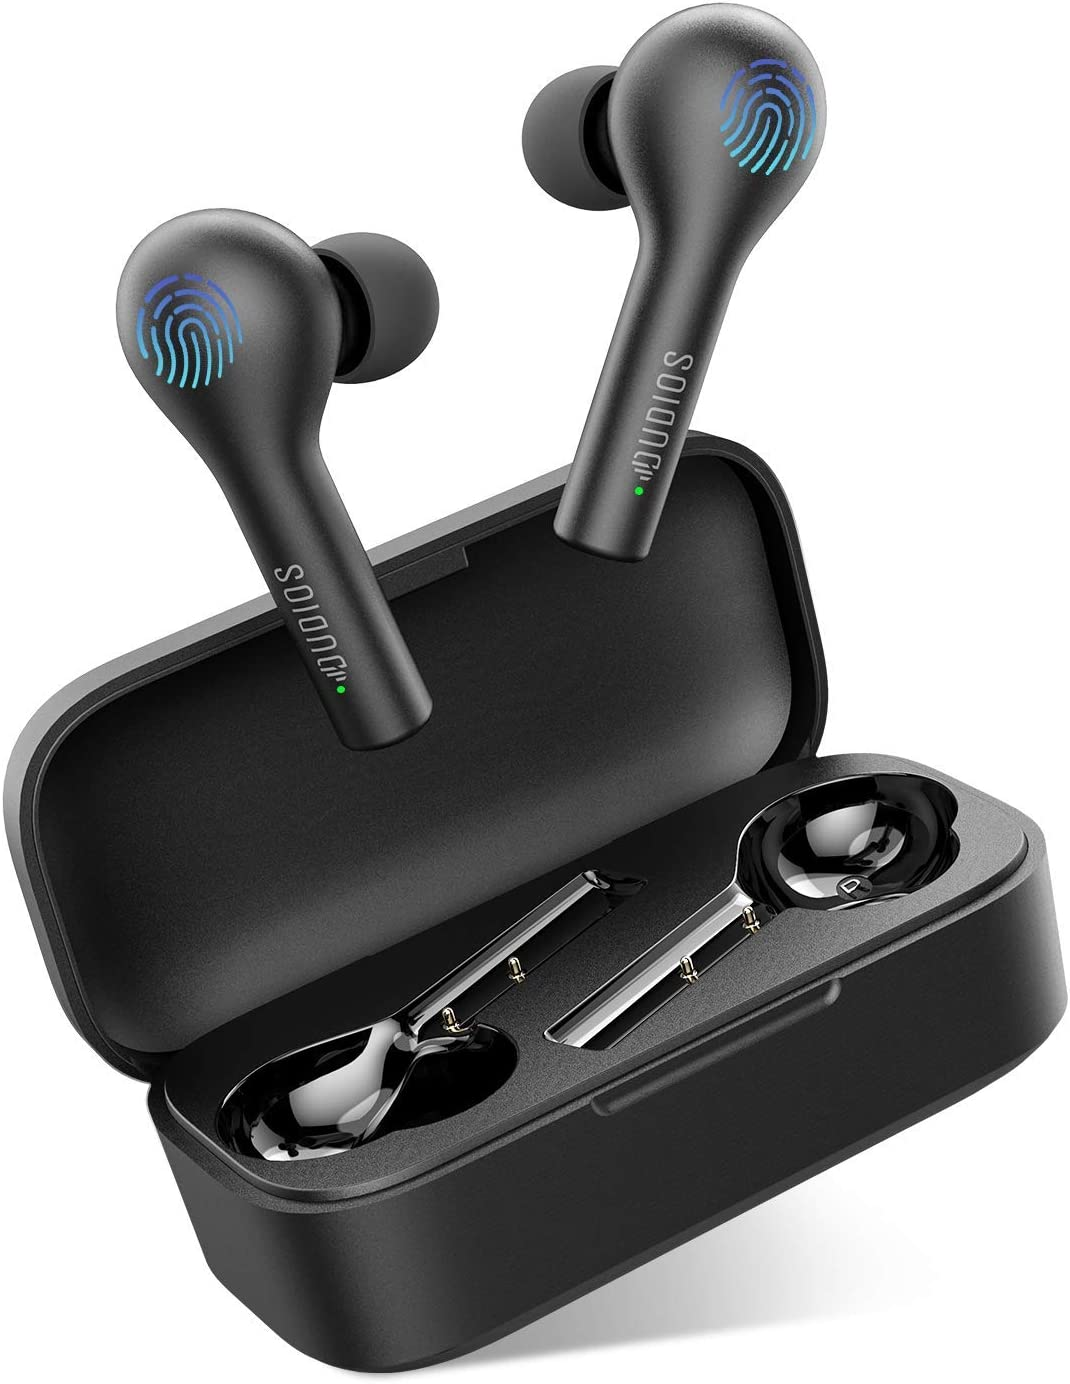 Wireless Earbuds with Charging Case, Bluetooth 5.0 Earphones 20Hrs Playing Time in-Ear Clear Call Stereo Sound Built-in Mic Sweatproof Auto Pairing for iPhone Samsung Android, Noise Cancelling